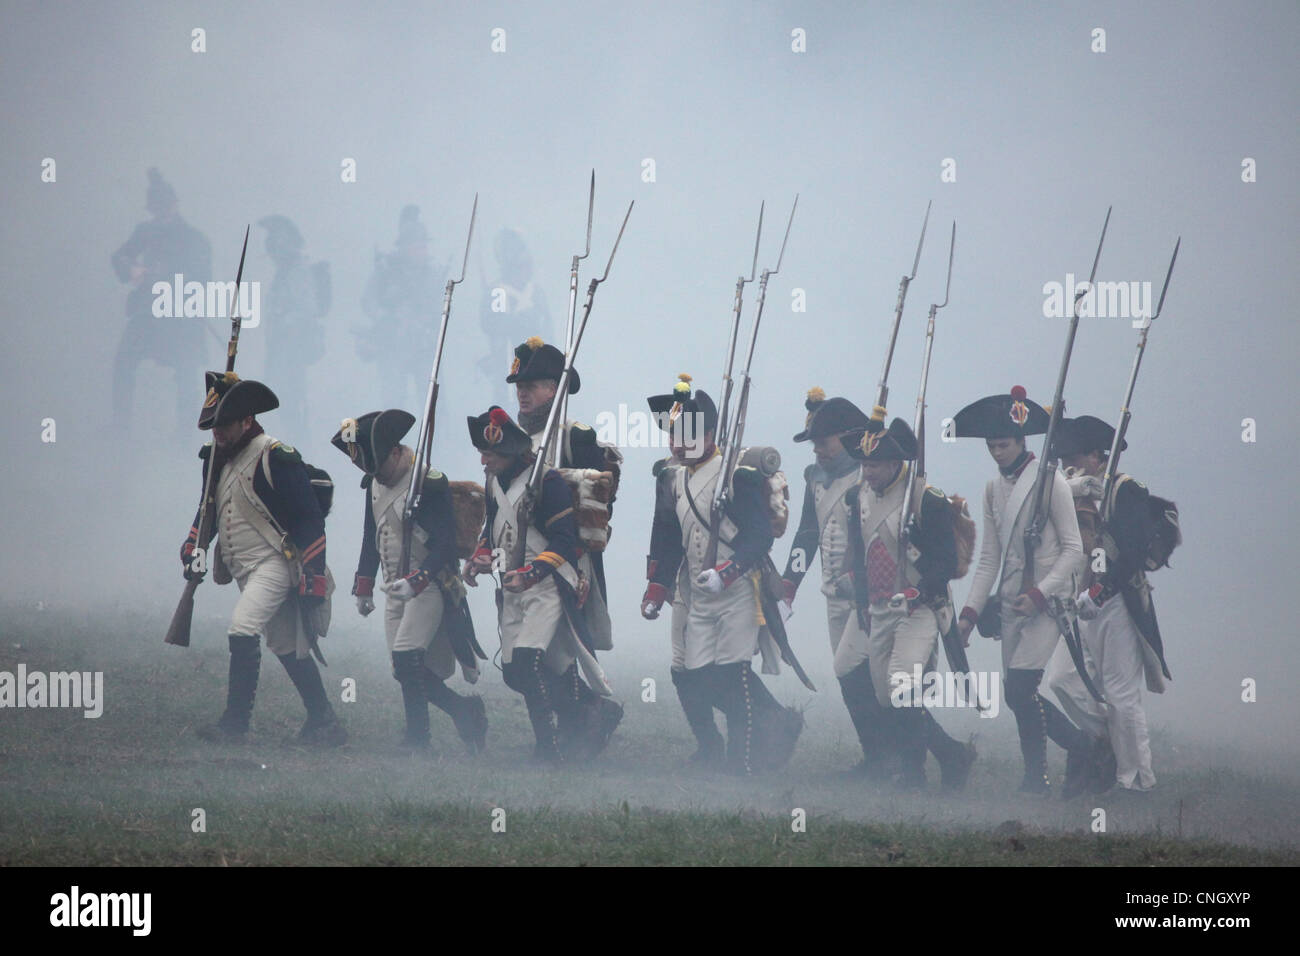 French troops. Re-enactment of the Battle of Austerlitz (1805) at Santon Hill near the village of Tvarozna, Czech - Stock Image